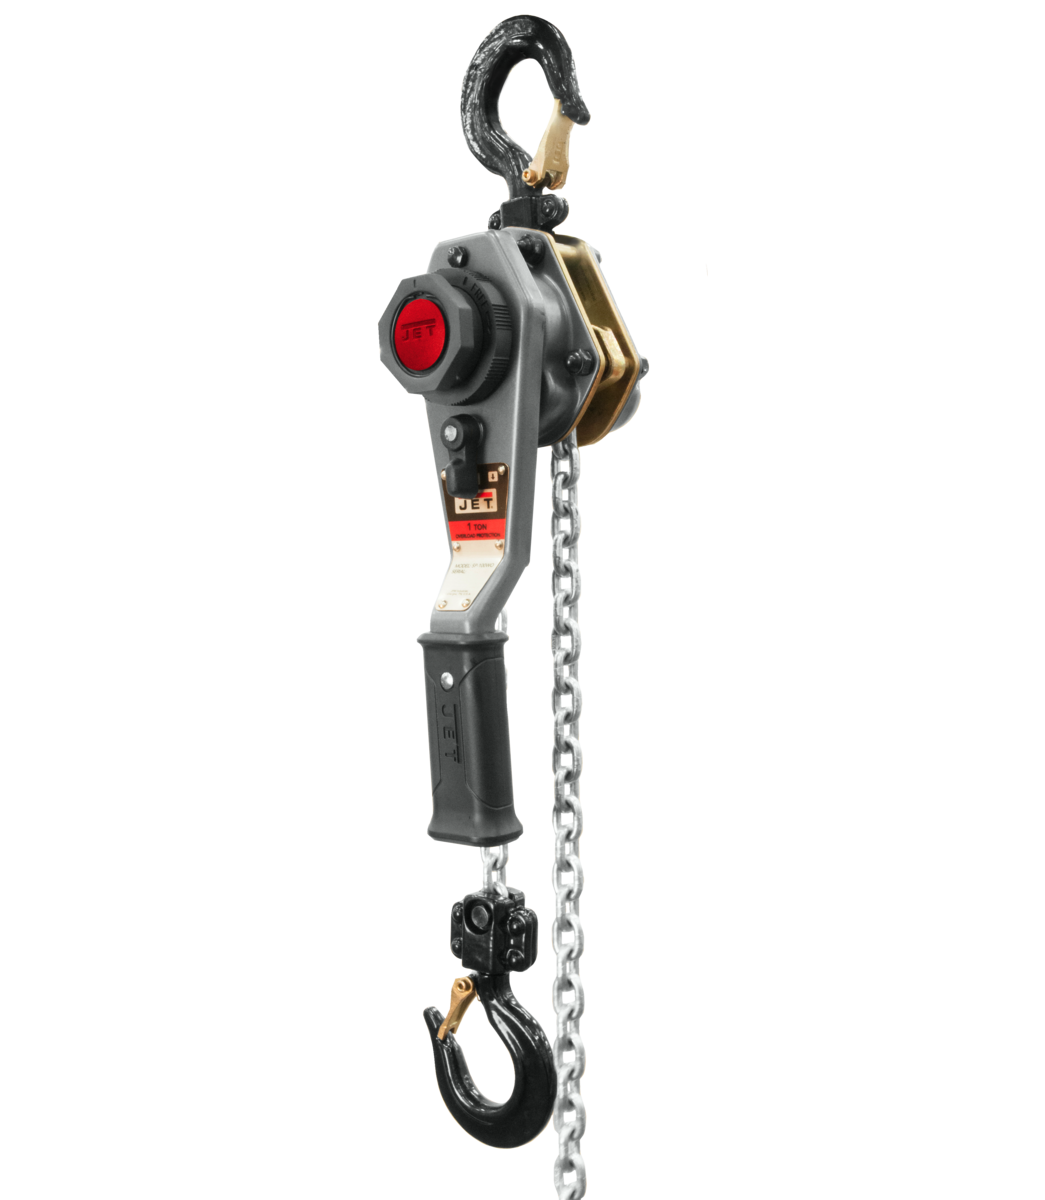 JLH Series 1 Ton Lever Hoist, 5' Lift with Overload Protection